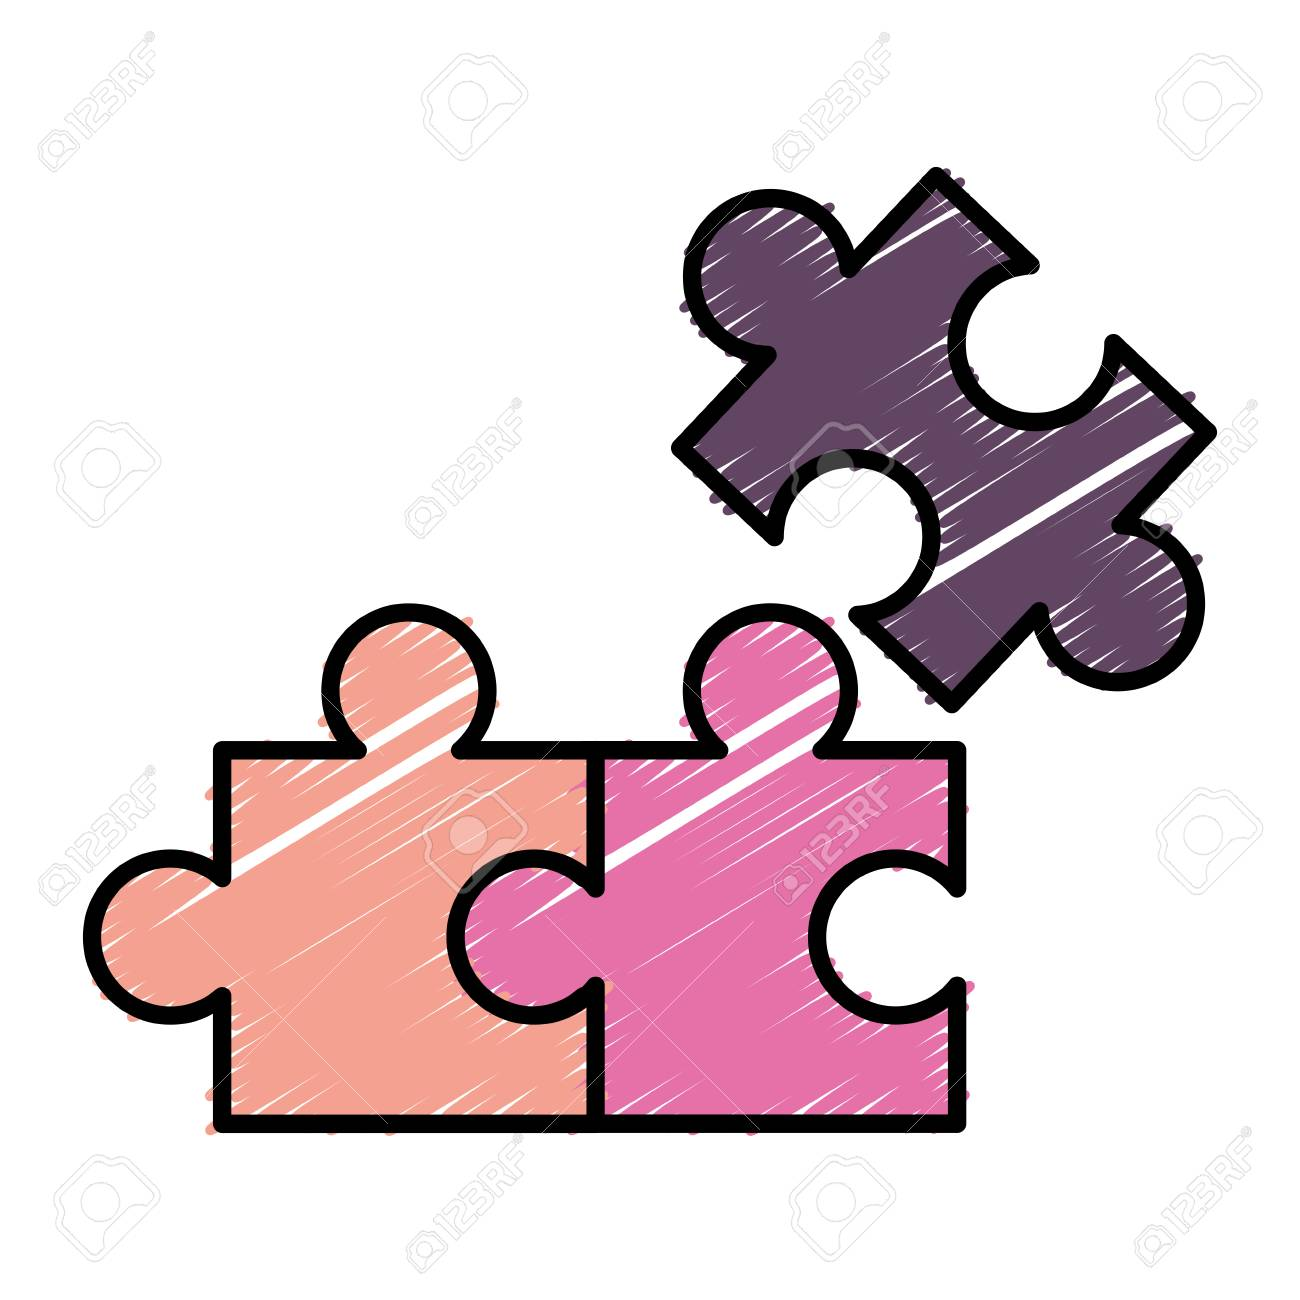 Jigsaw Puzzles Icon Over White Background Vector Illustration Stock